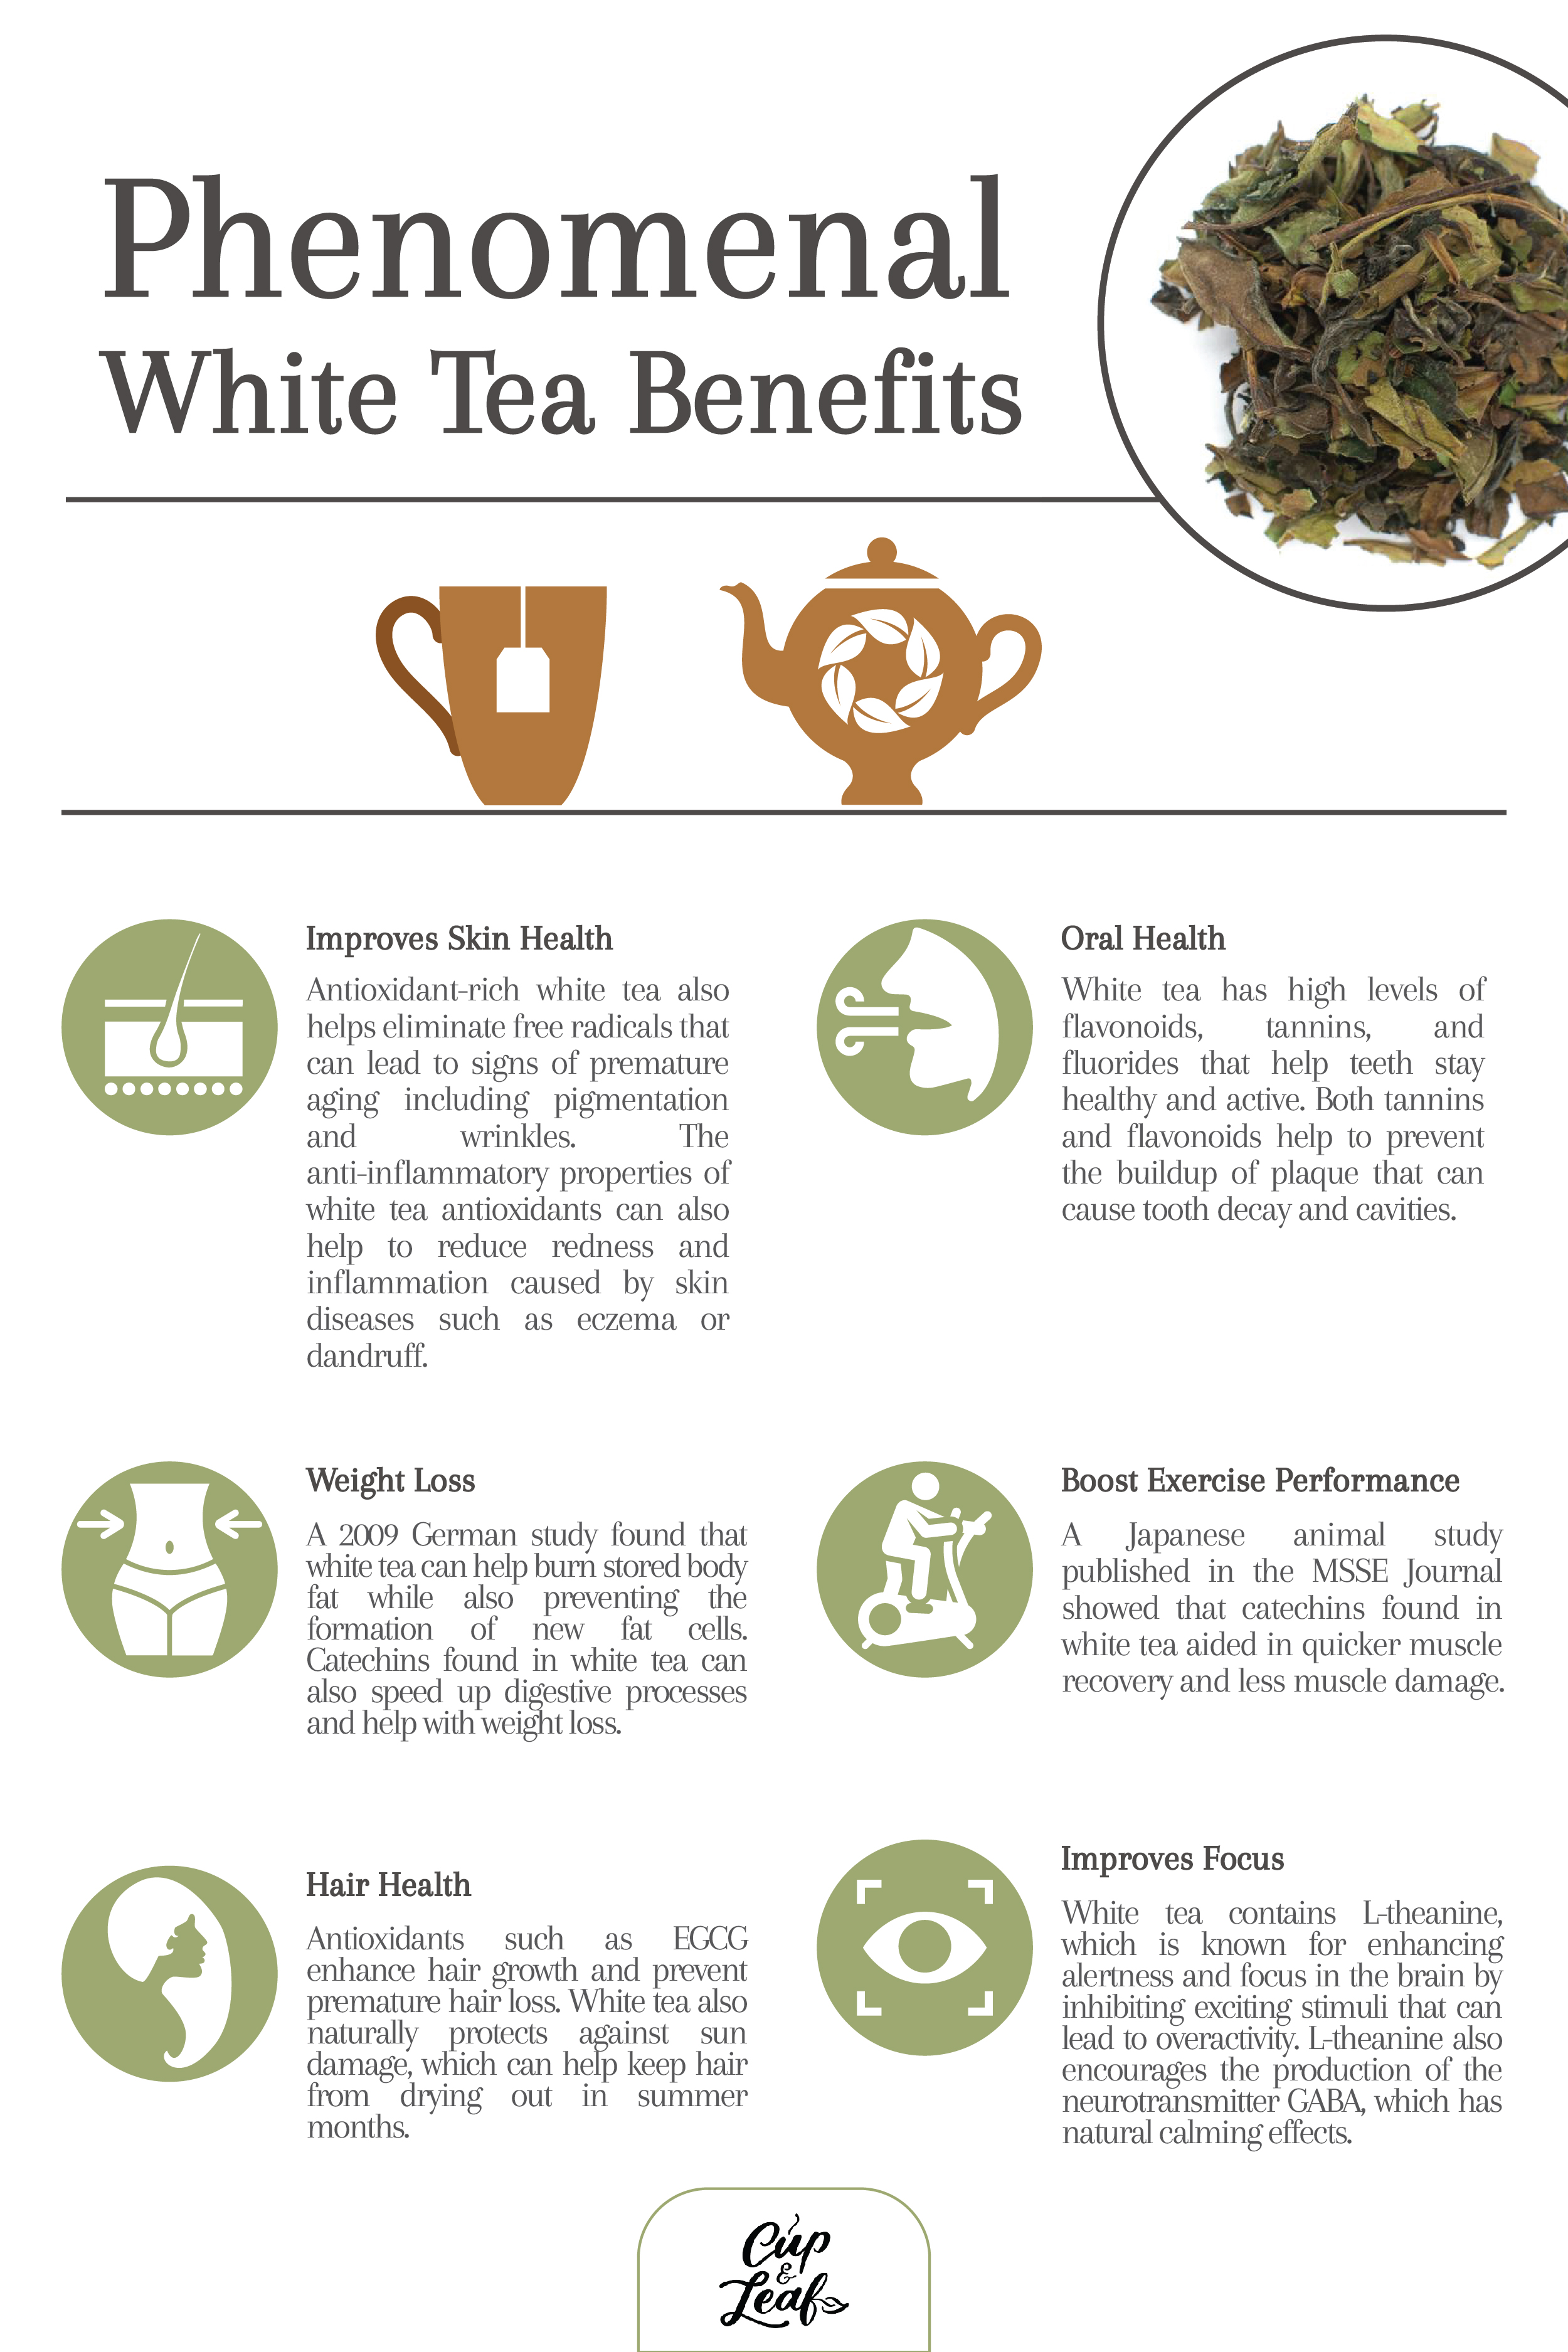 9 Phenomenal White Tea Benefits To Improve Your Health - Cup & Leaf